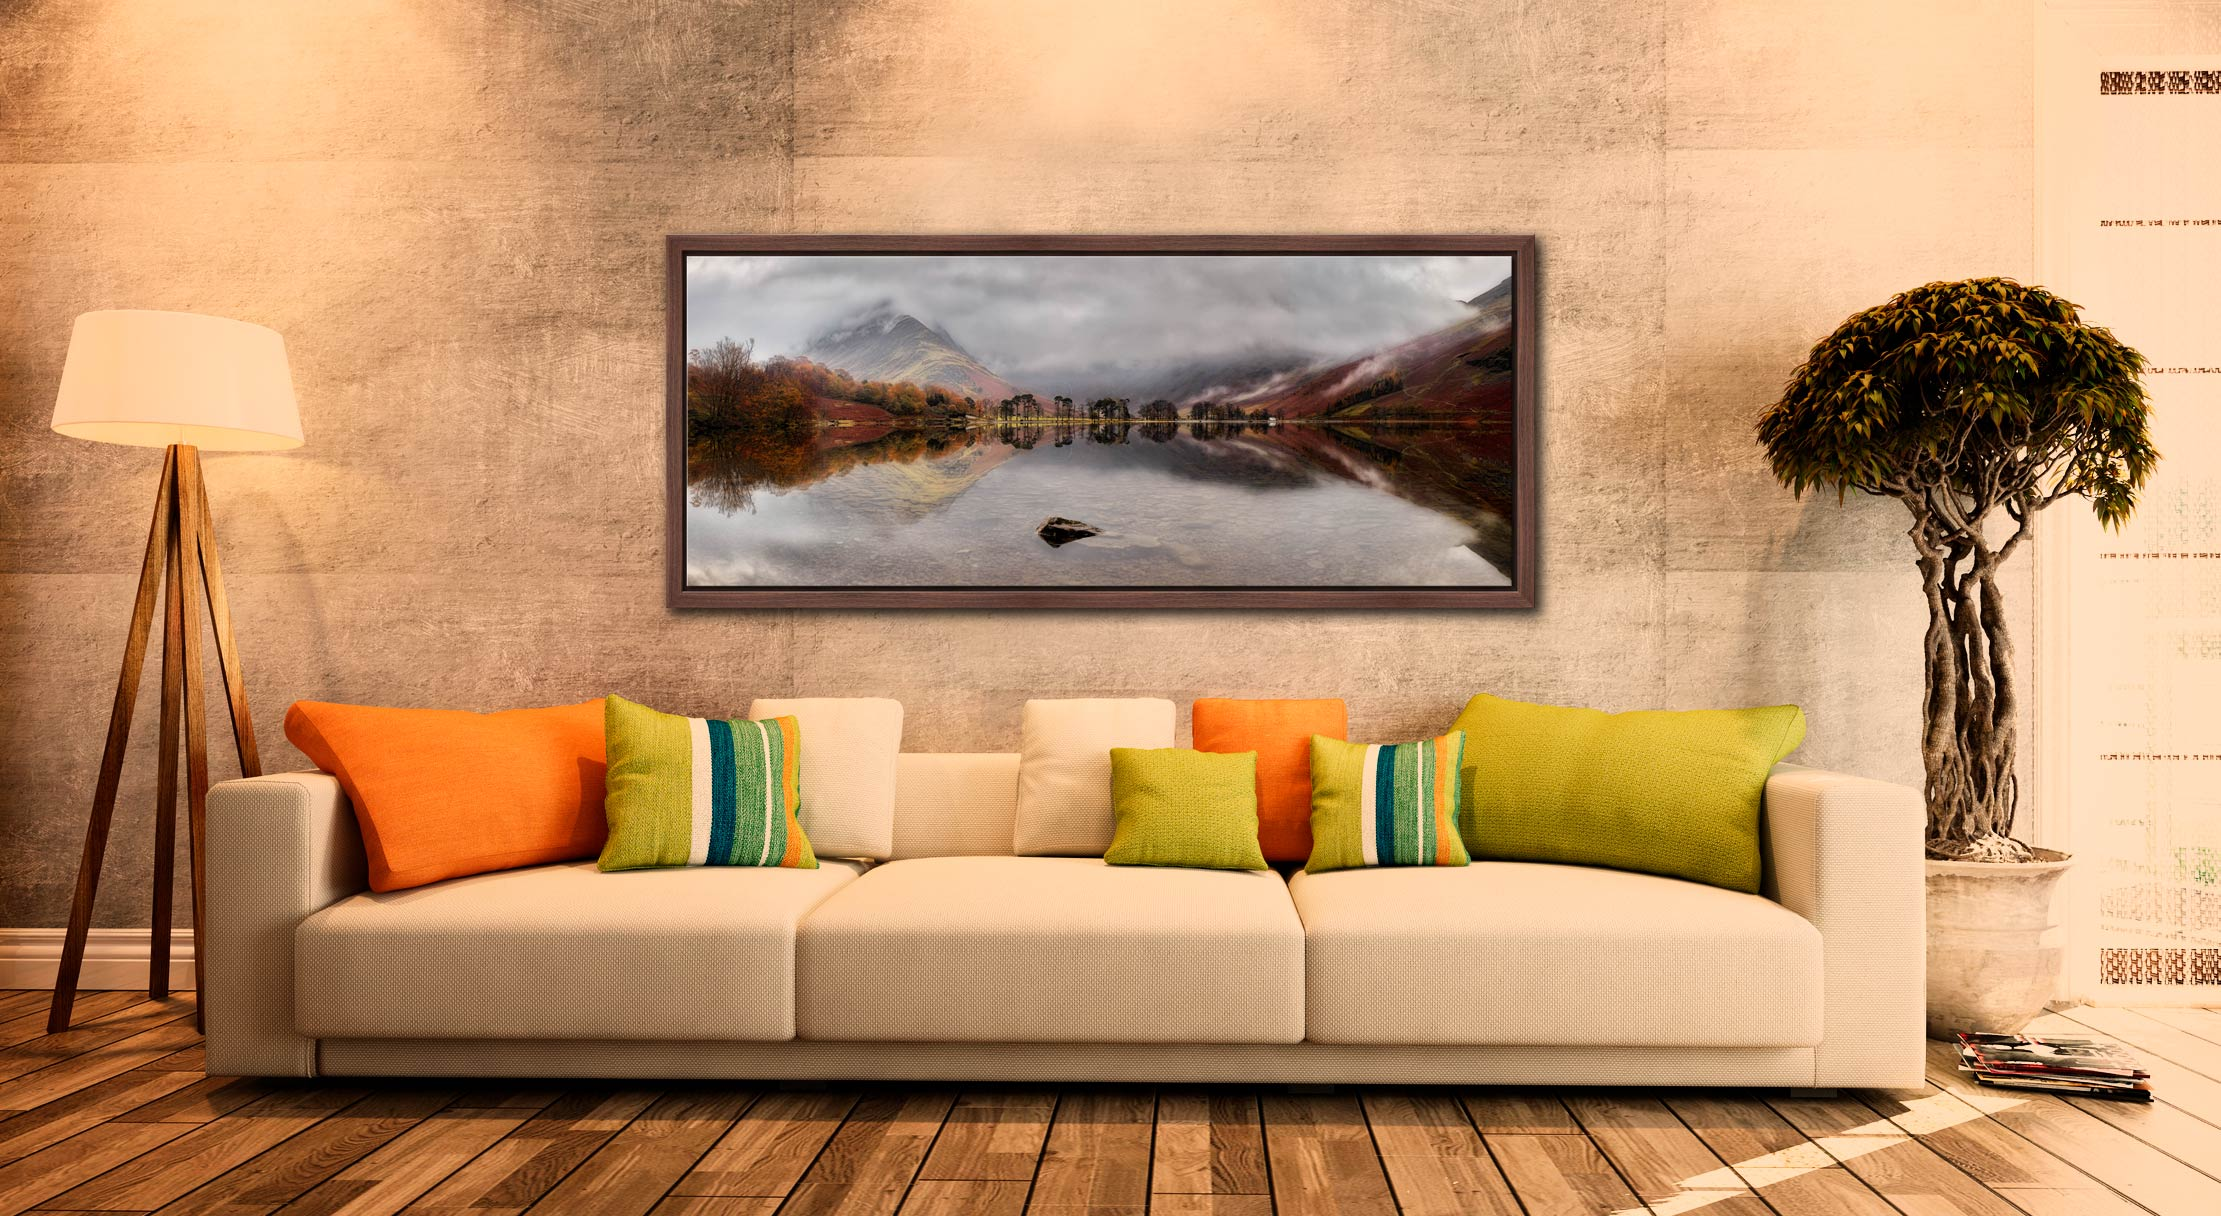 A moment of calm on a rainy day at Buttermere - Walnut floater frame with acrylic glazing on Wall